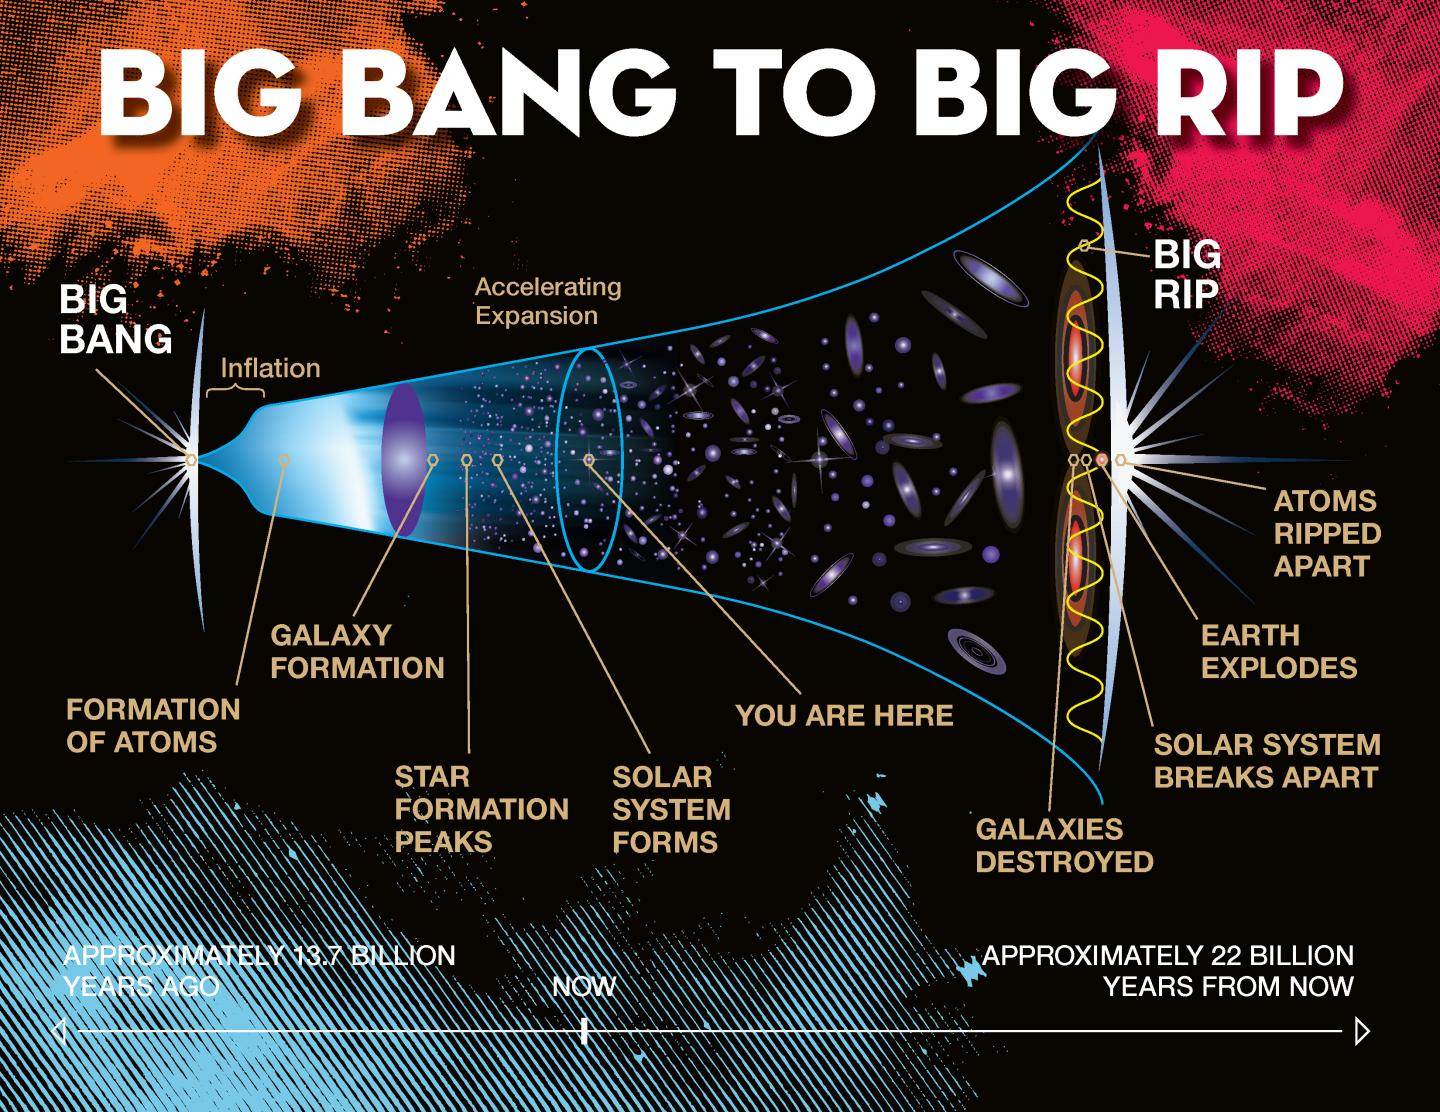 An illustration shows the timeline progression from the Big Bang to the Big Rip.